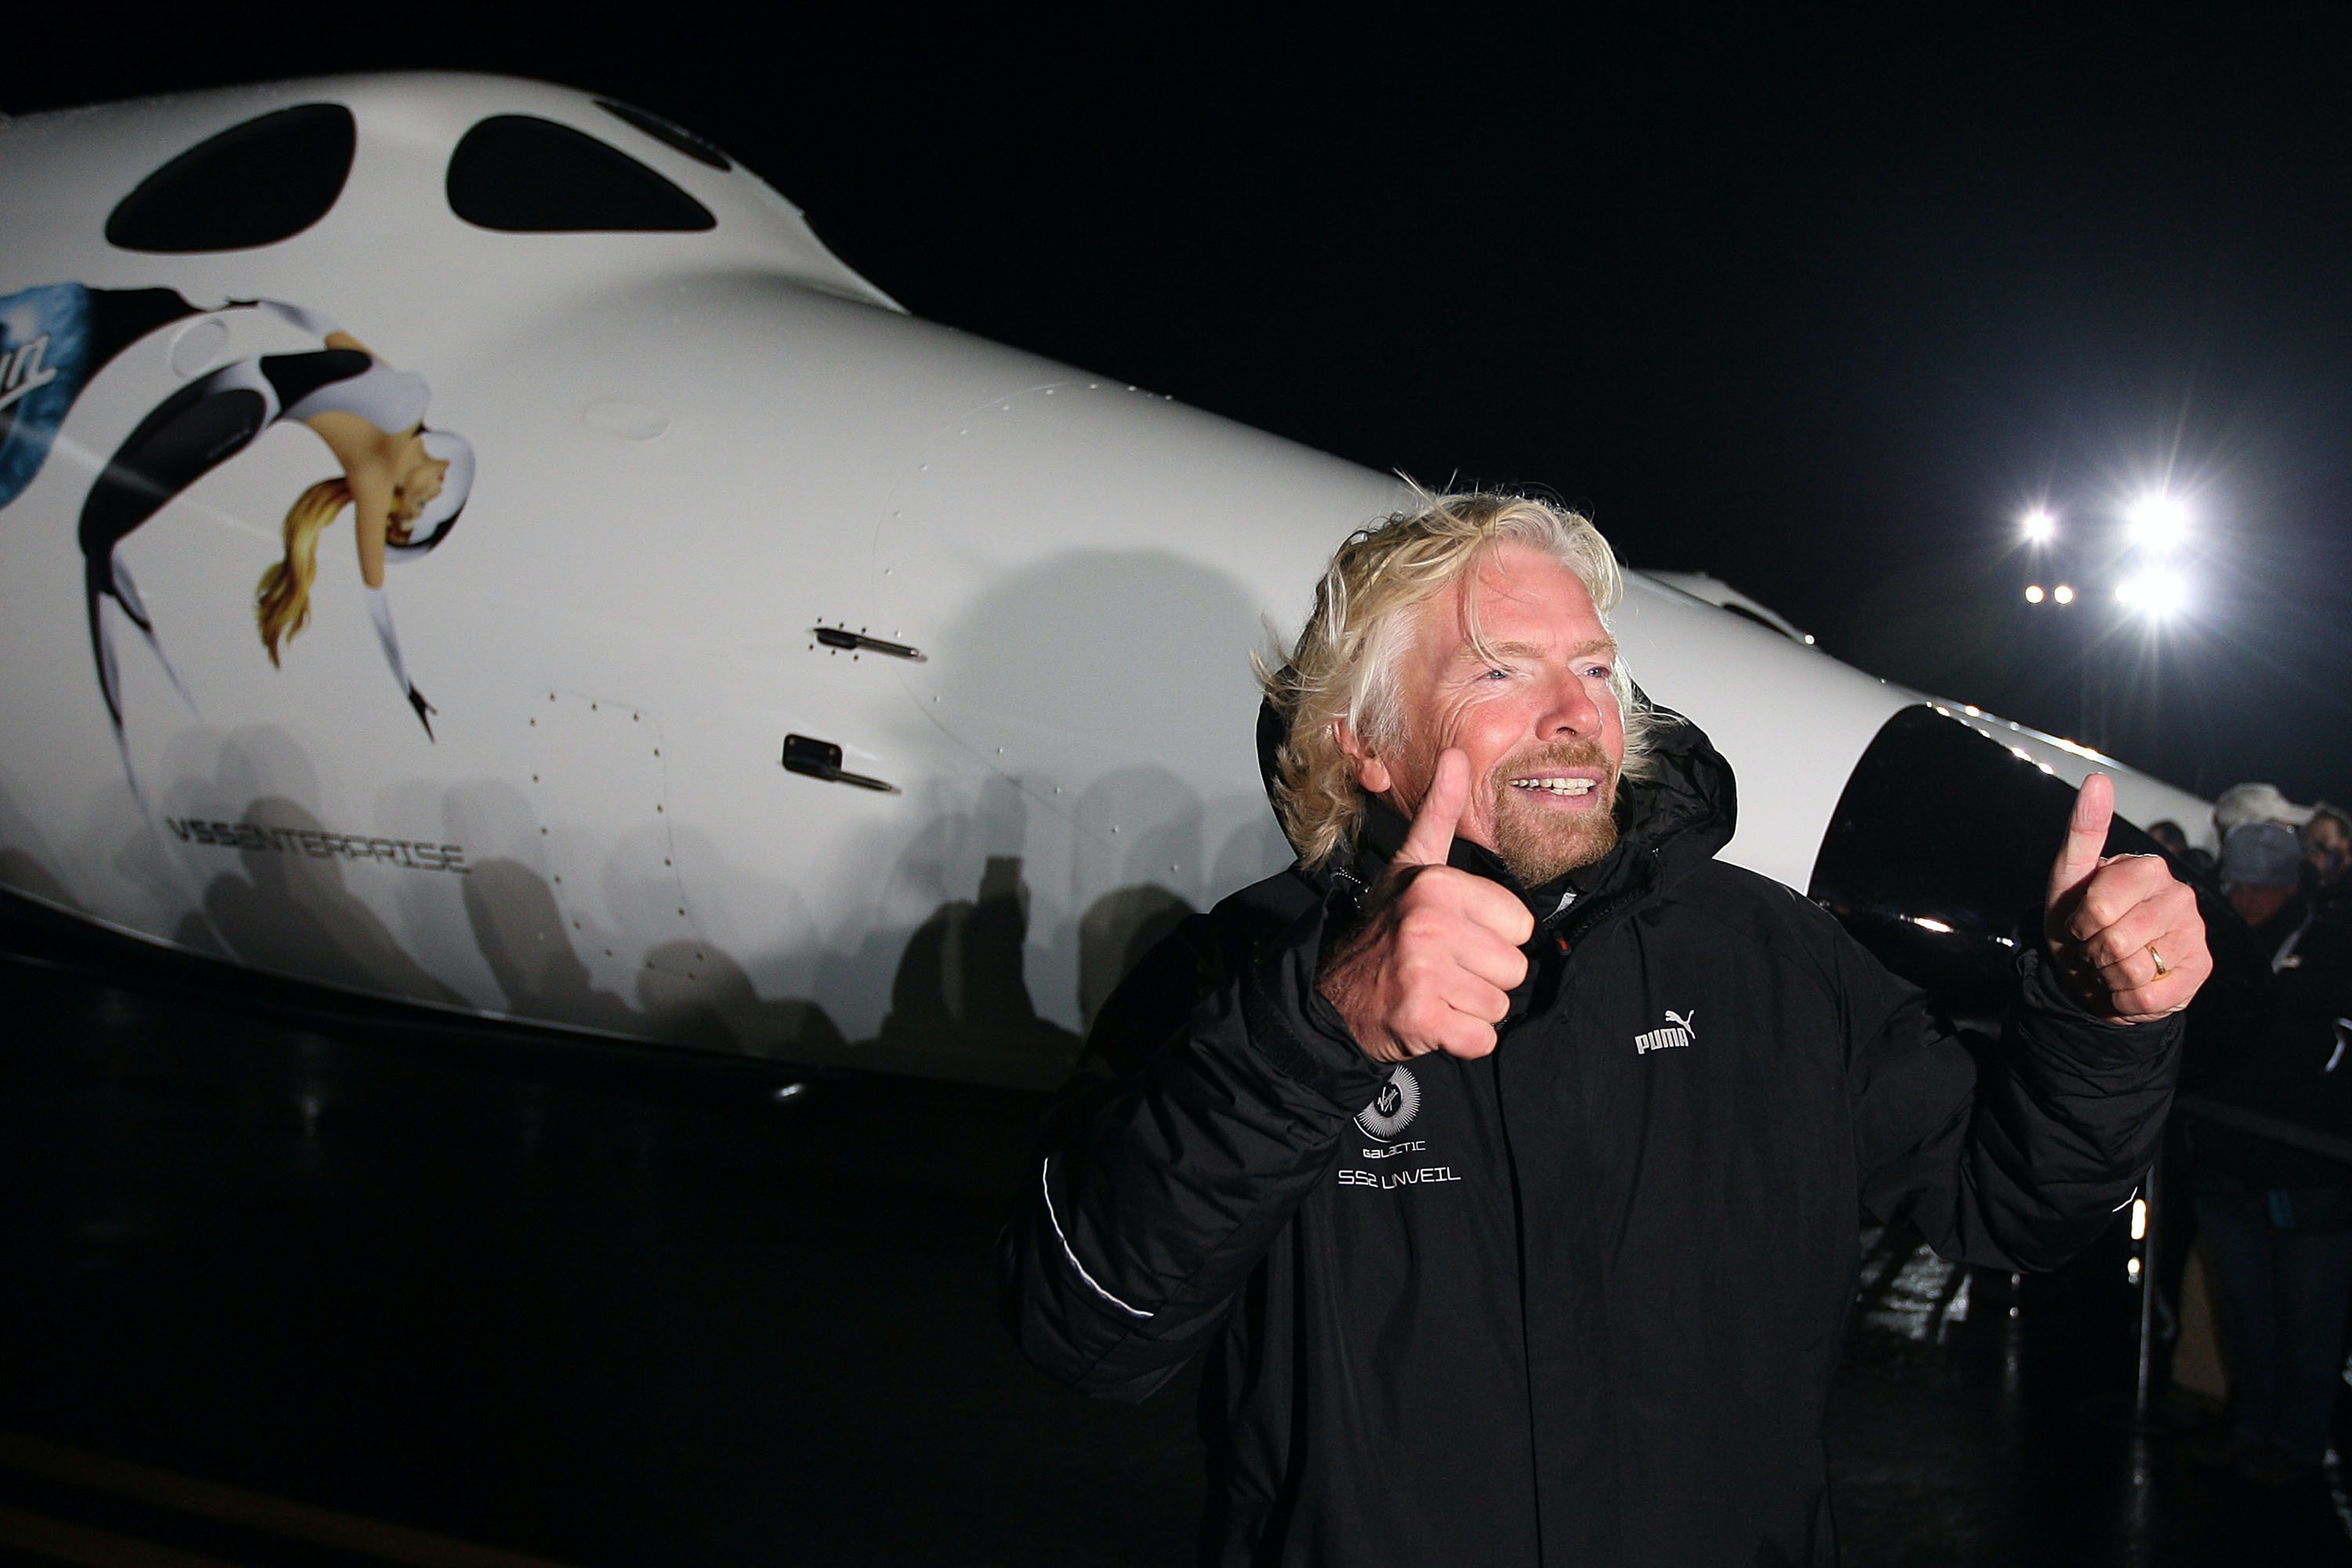 Sir Richard Branson gestures to reporters as Virgin Galactic unveils its new SpaceShipTwo spacecraft at the Mojave Spaceport back on December 7, 2009 near Mojave, California.